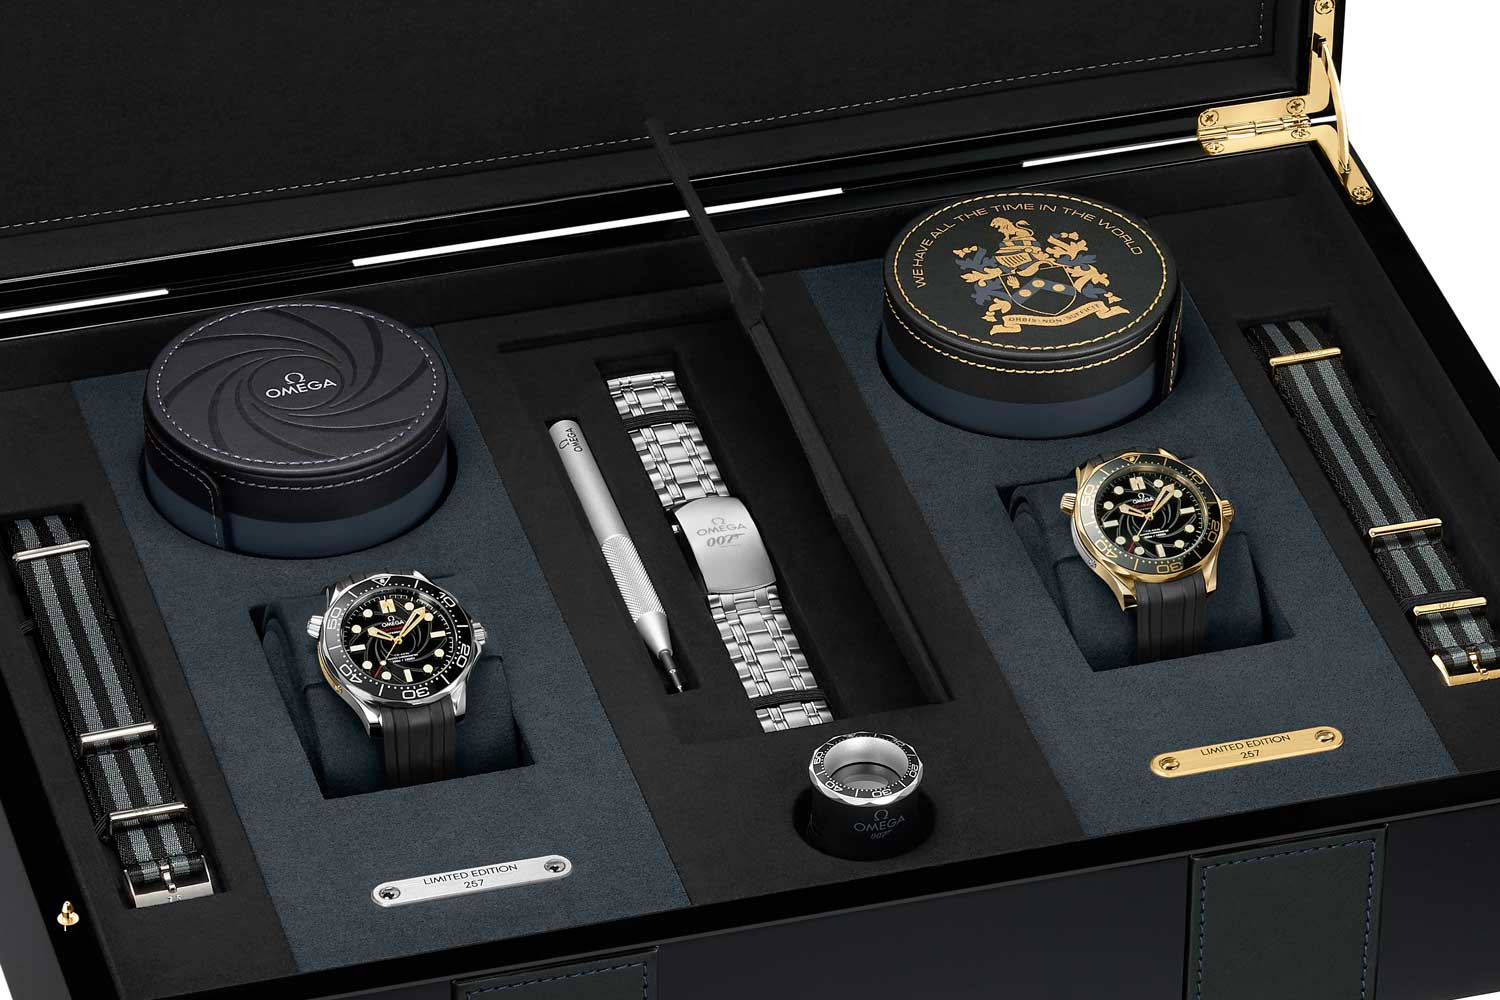 OMEGA James Bond Limited Edition Set including the 42mm stainless steel and 18K yellow gold Seamaster Diver 300M watches with additional NATO straps, a stainless steel bracelet and carrying cases